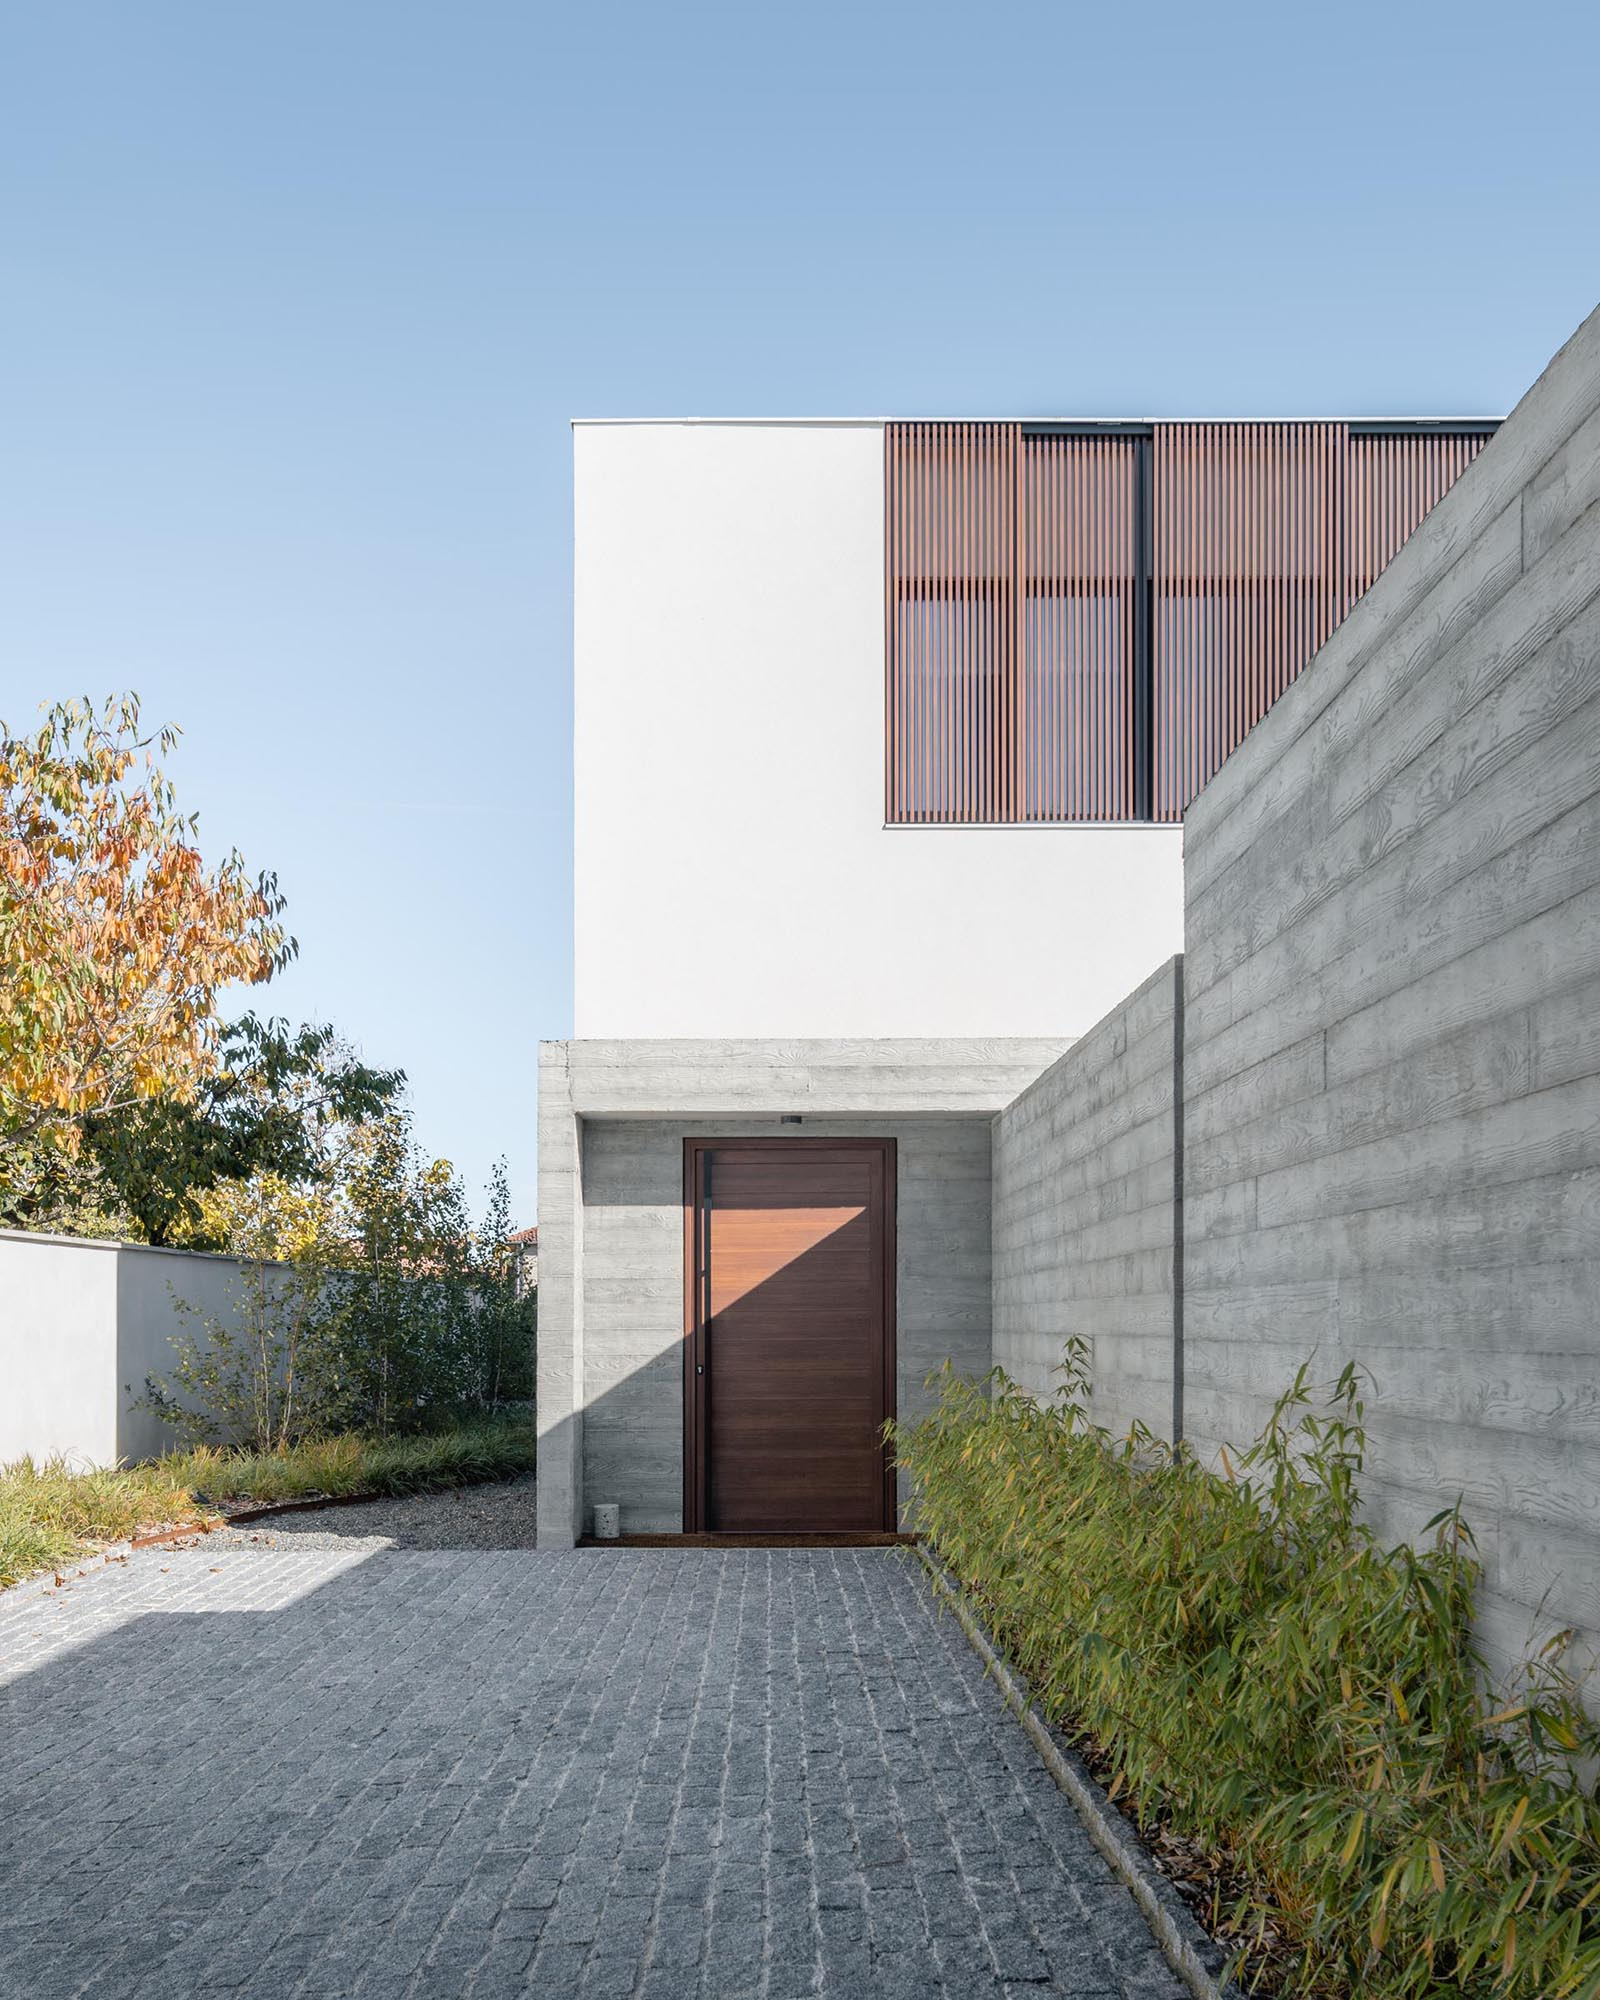 A small driveway with a concrete wall and plants, and a wood front door.